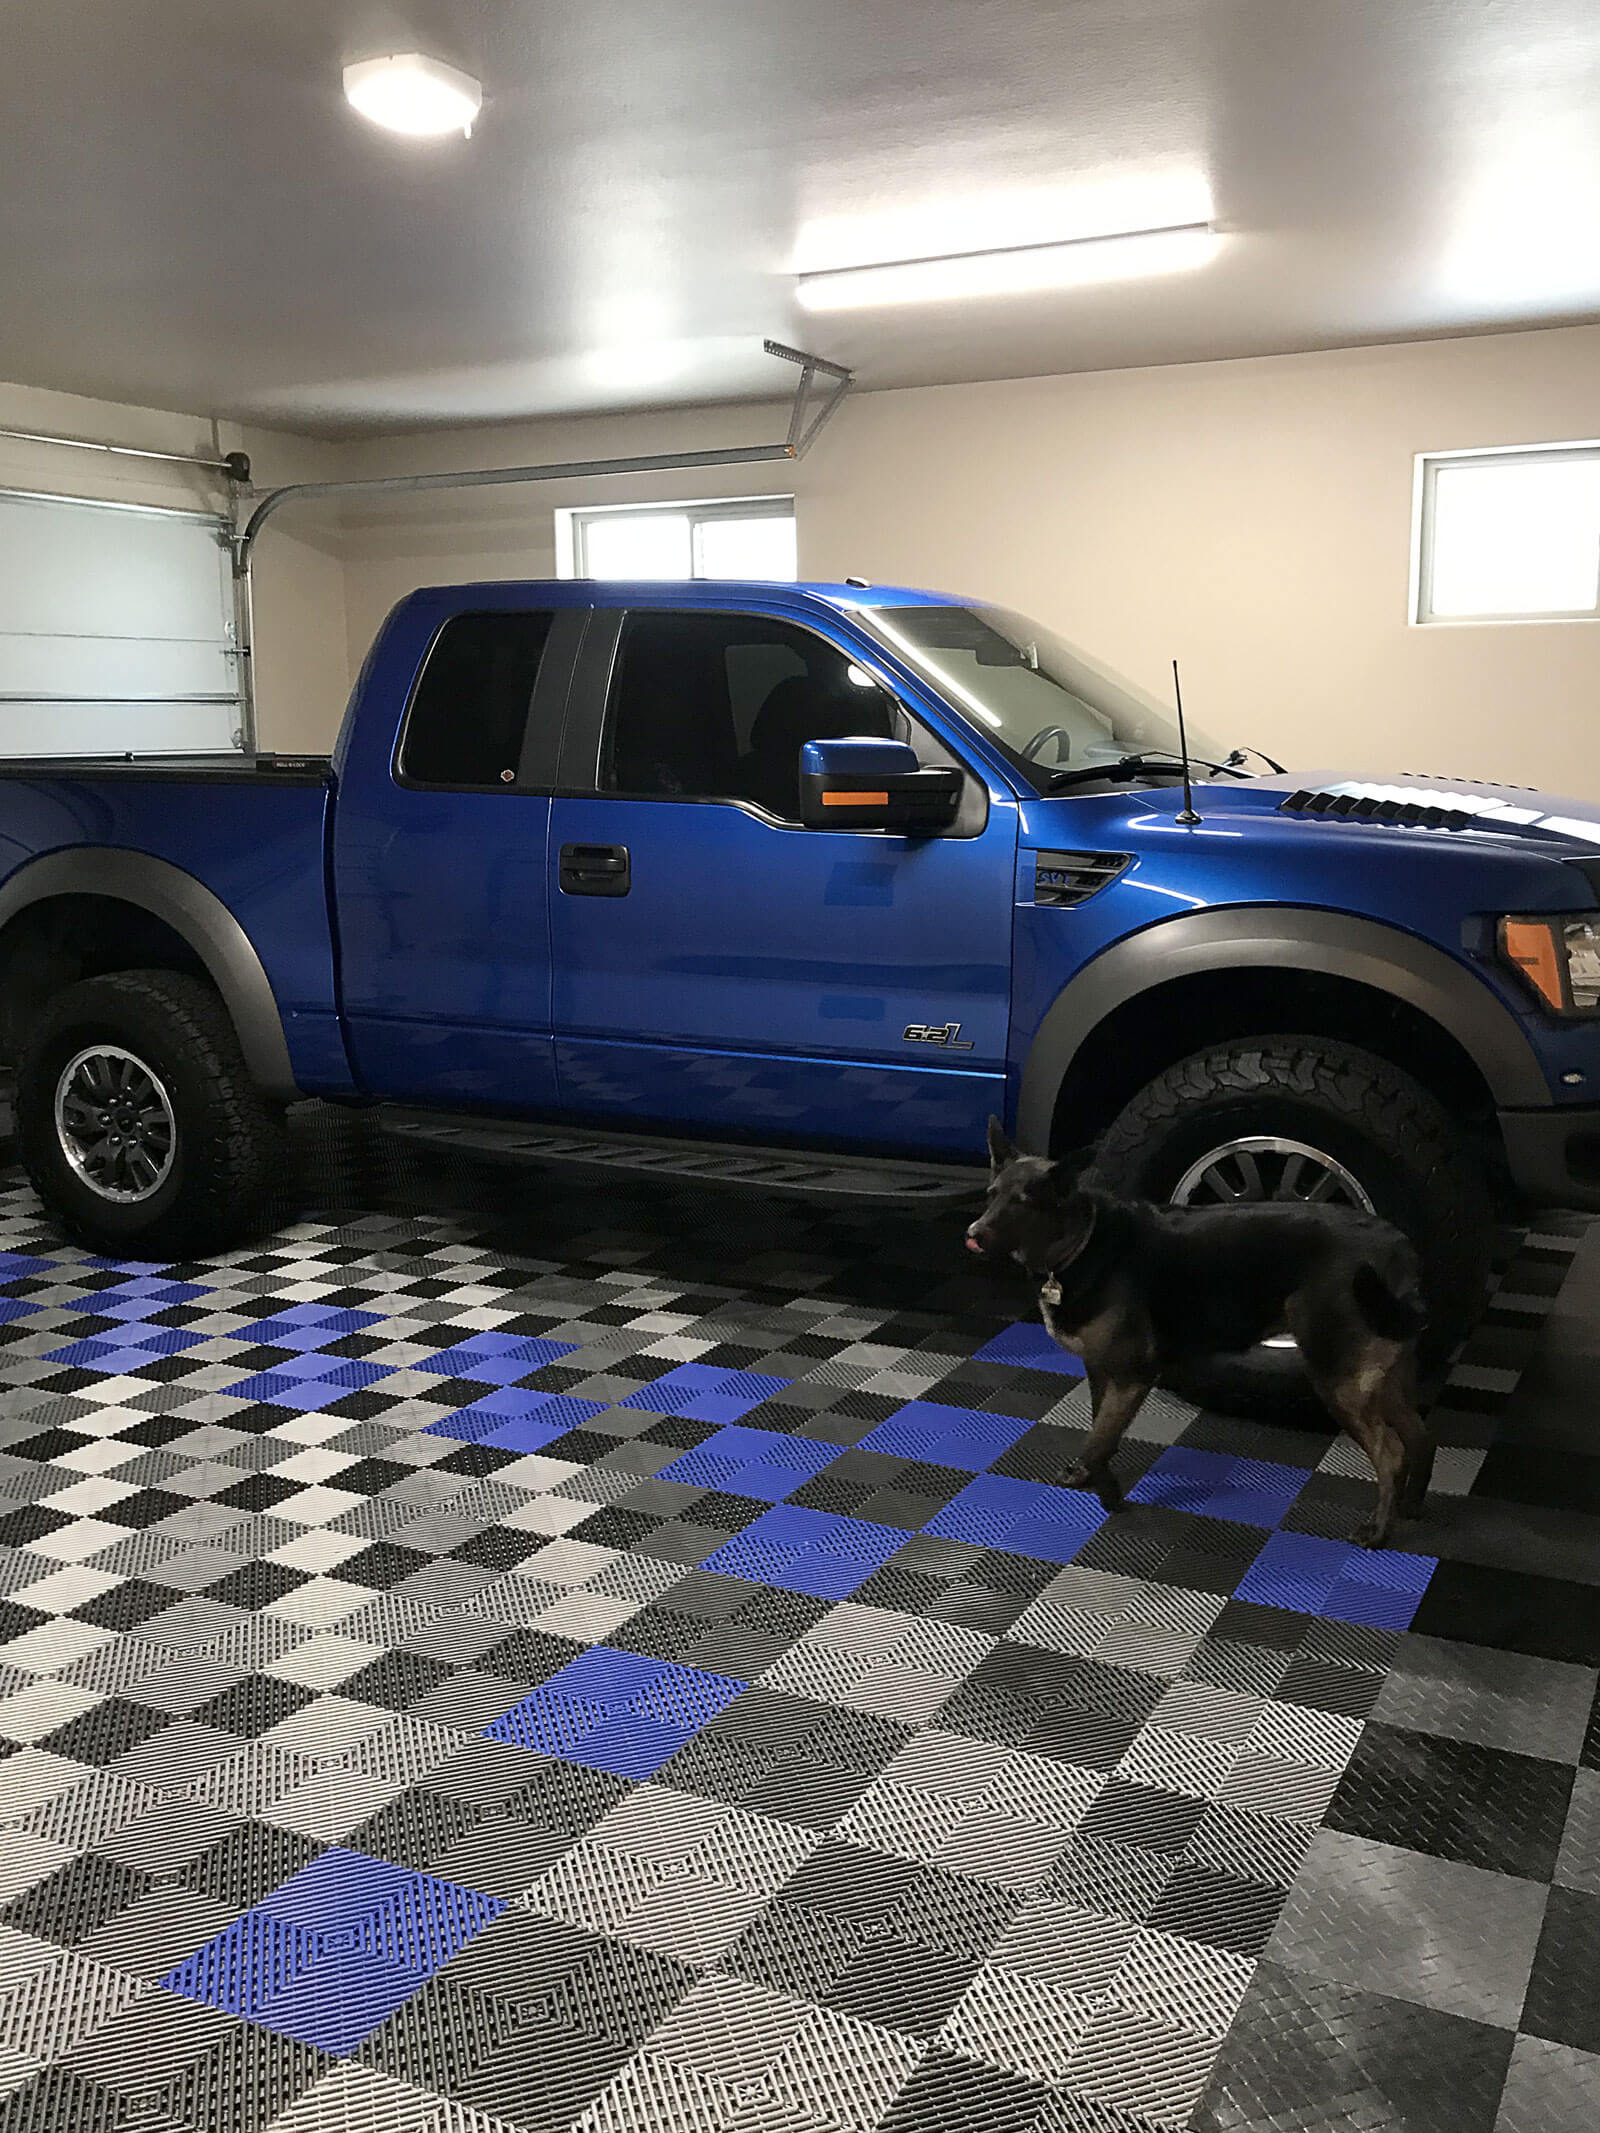 Free-Flow and RaceDeck Diamond garage in a custom design matches this blue truck and even the dog.